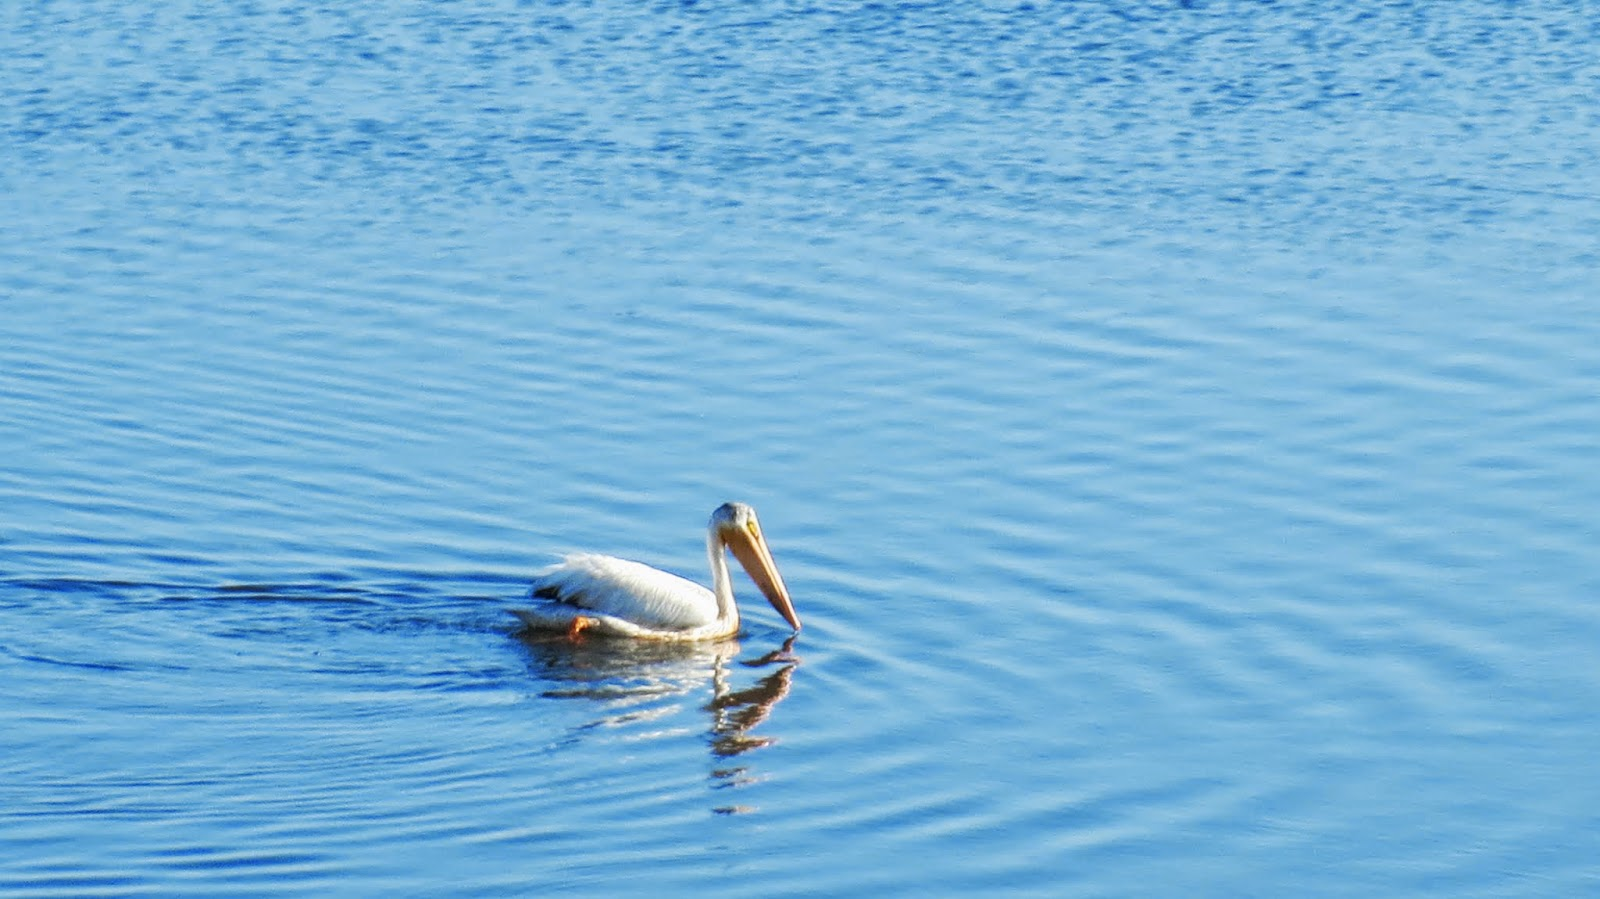 Pelican in Shoreline Park in Mountain View, California